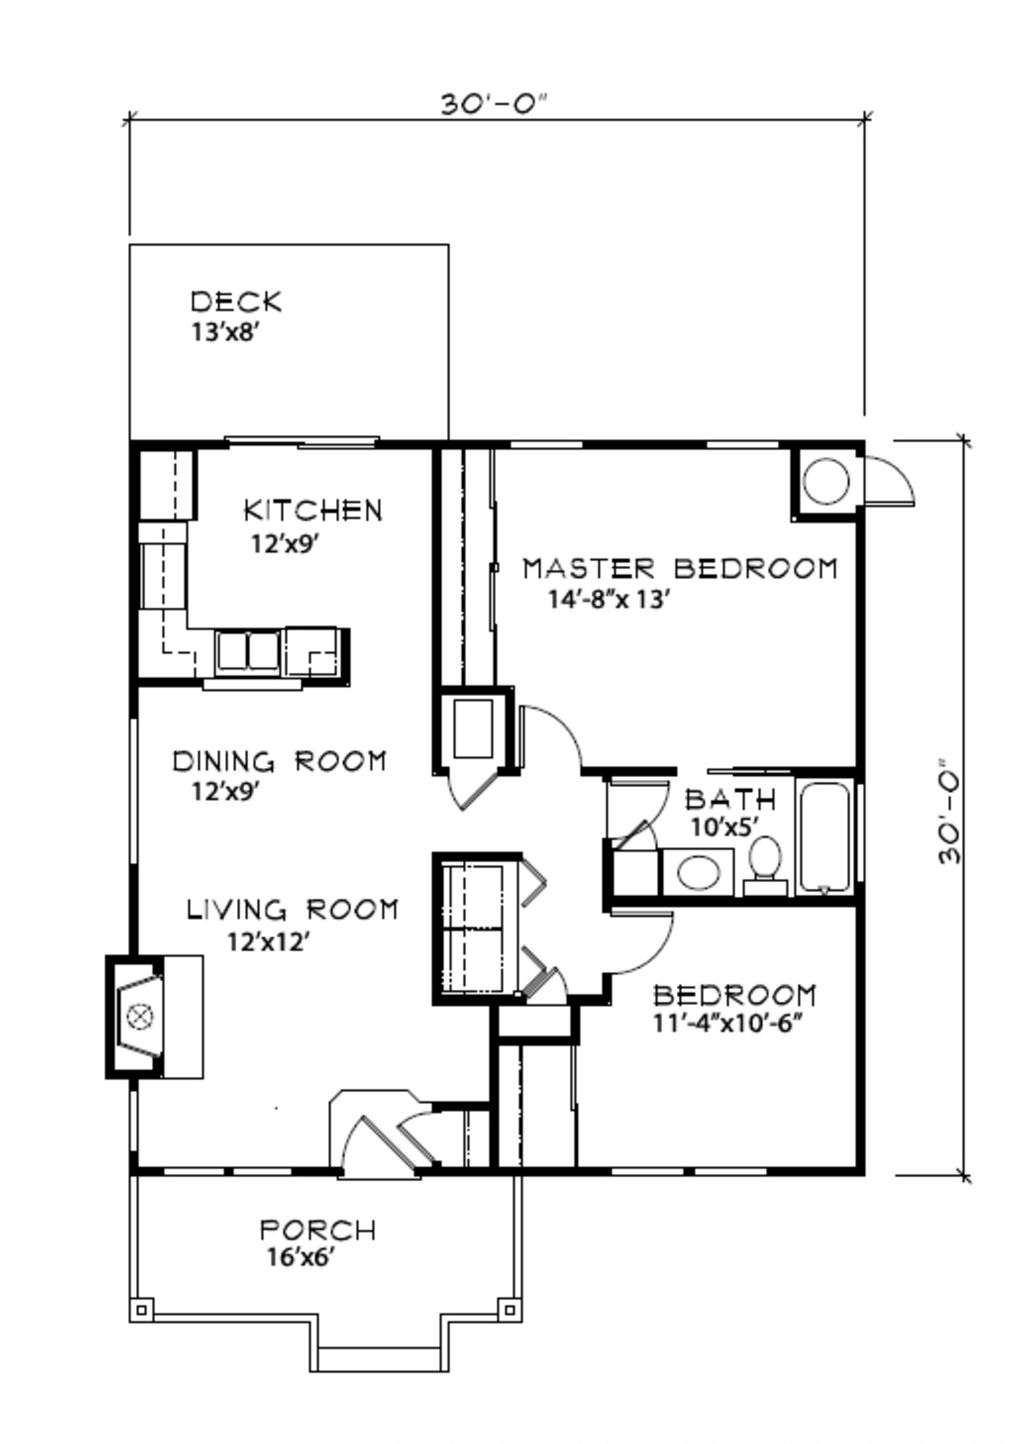 Cottage style house plan 2 beds baths 900 sq ft for 900 square feet house plans